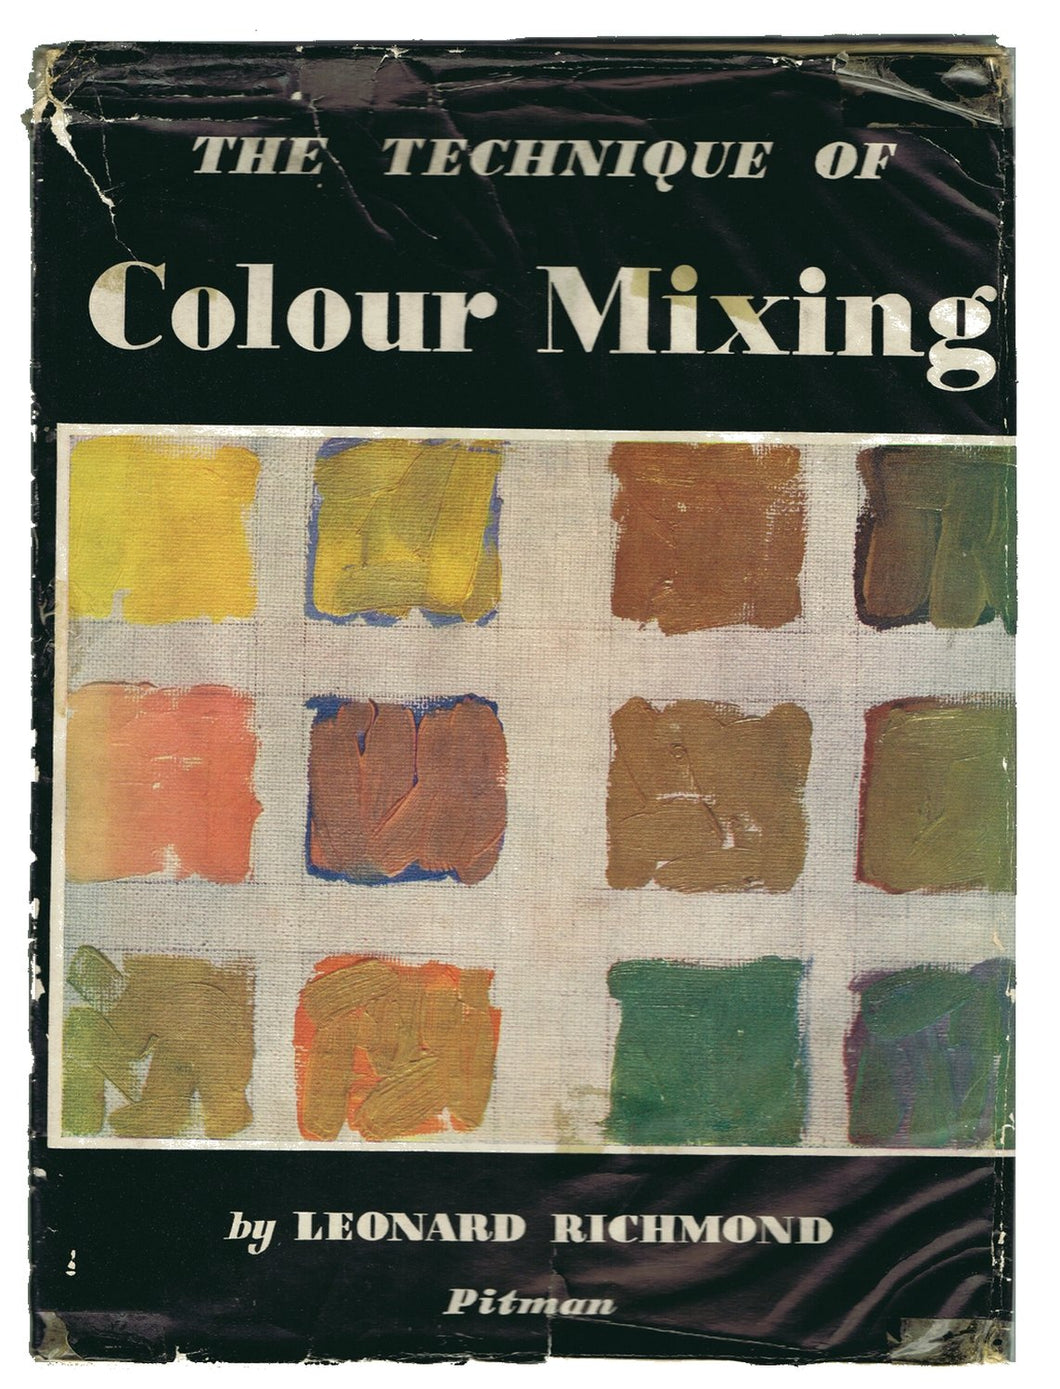 The Technique of Colour Mixing